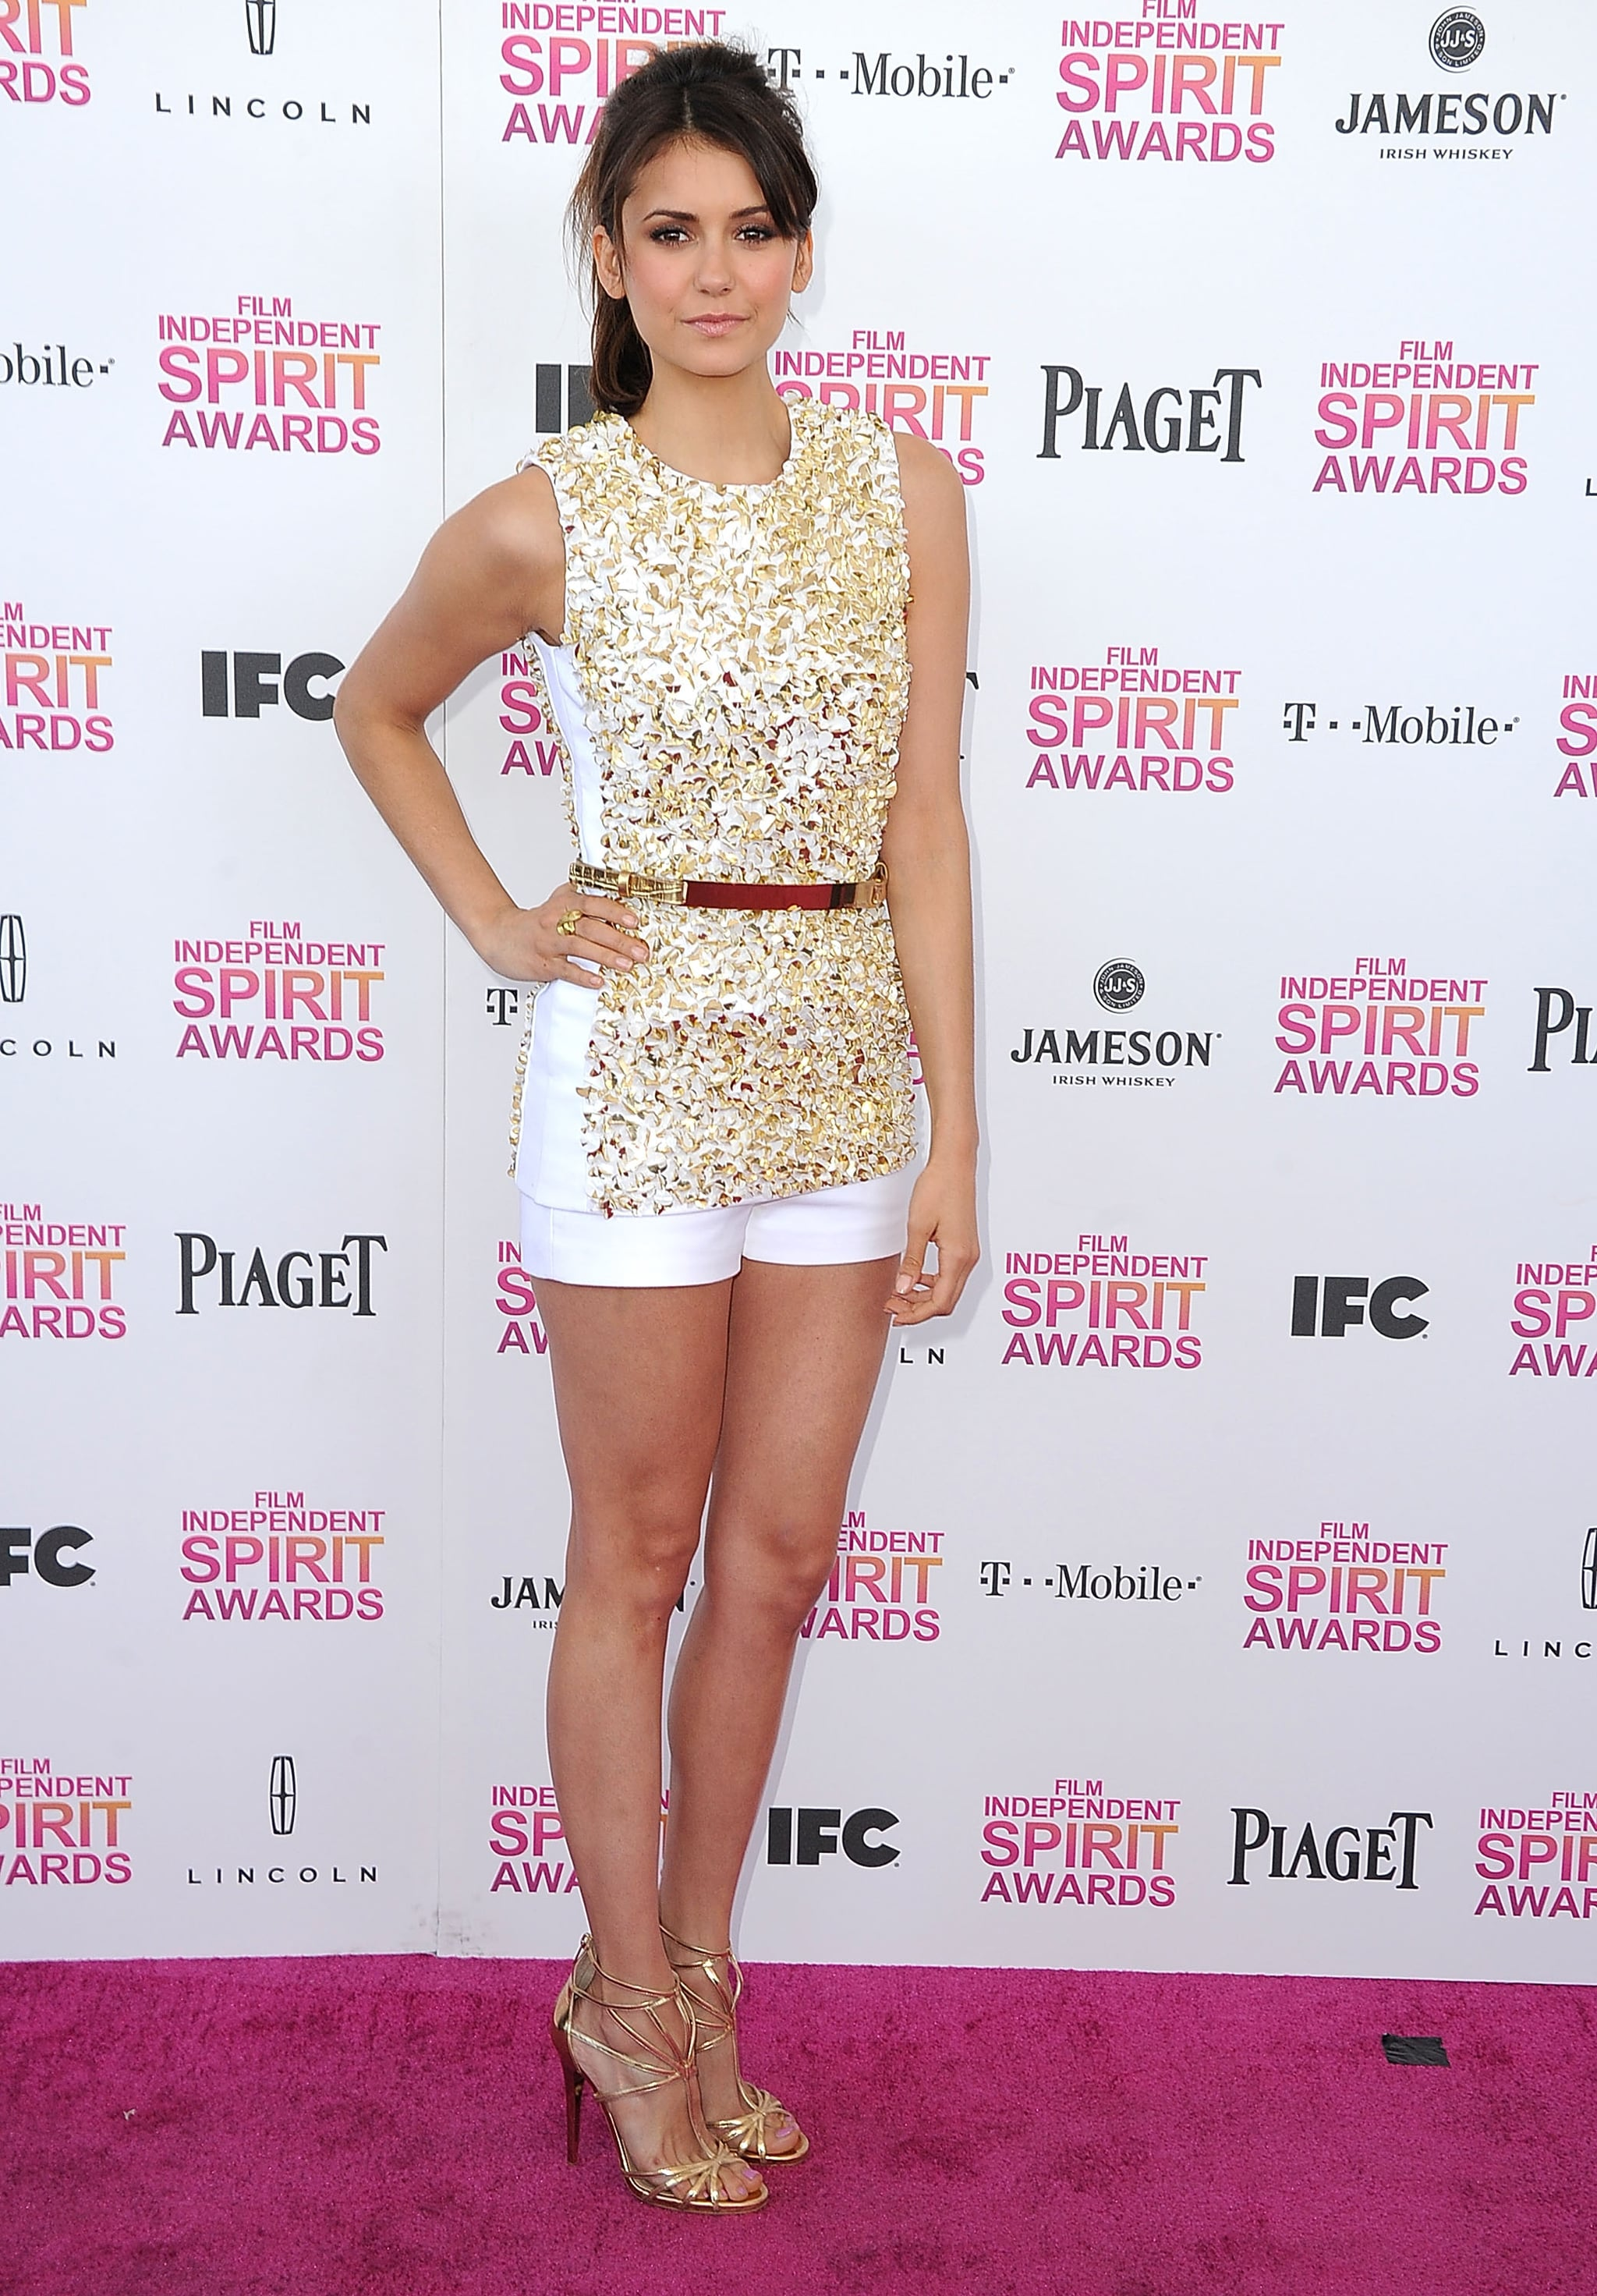 Nina Dobrev chose a short and sweet guilded Michael Kors duo for the 2013 Independent Spirit Awards in Santa Monica.